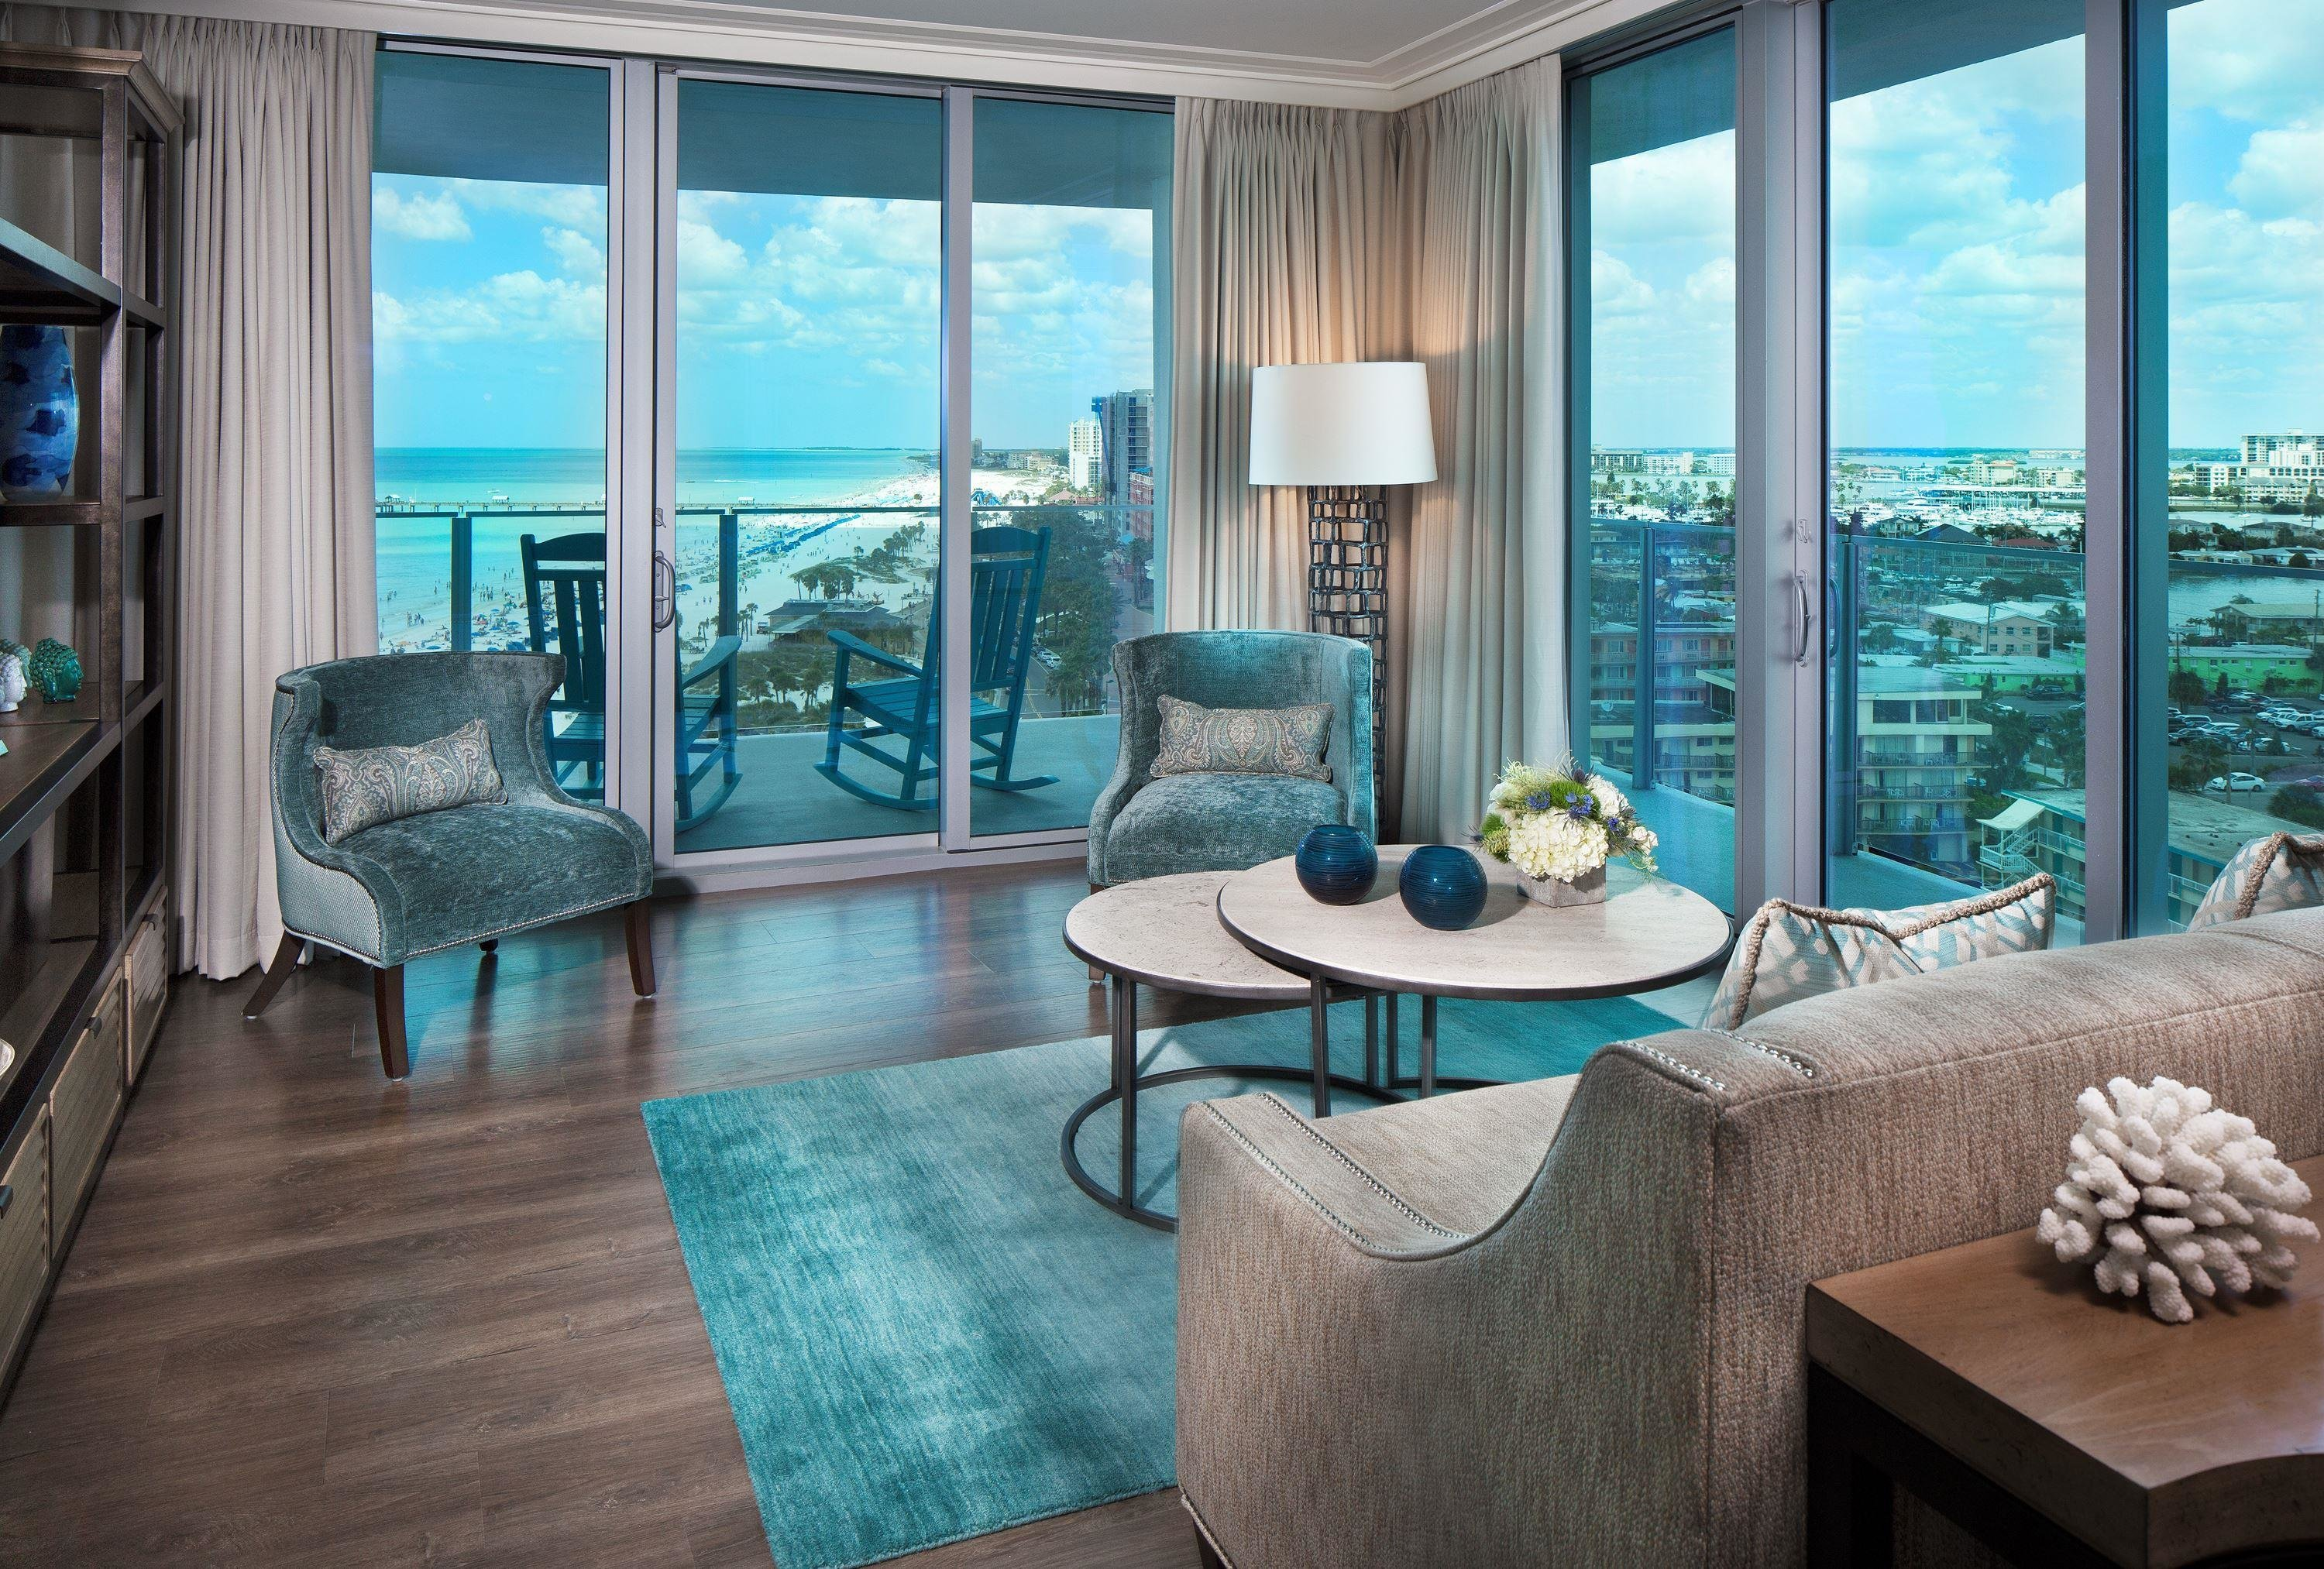 Best Luxury Guest Suites In Clearwater Fl Opal Sands Resort With Pictures